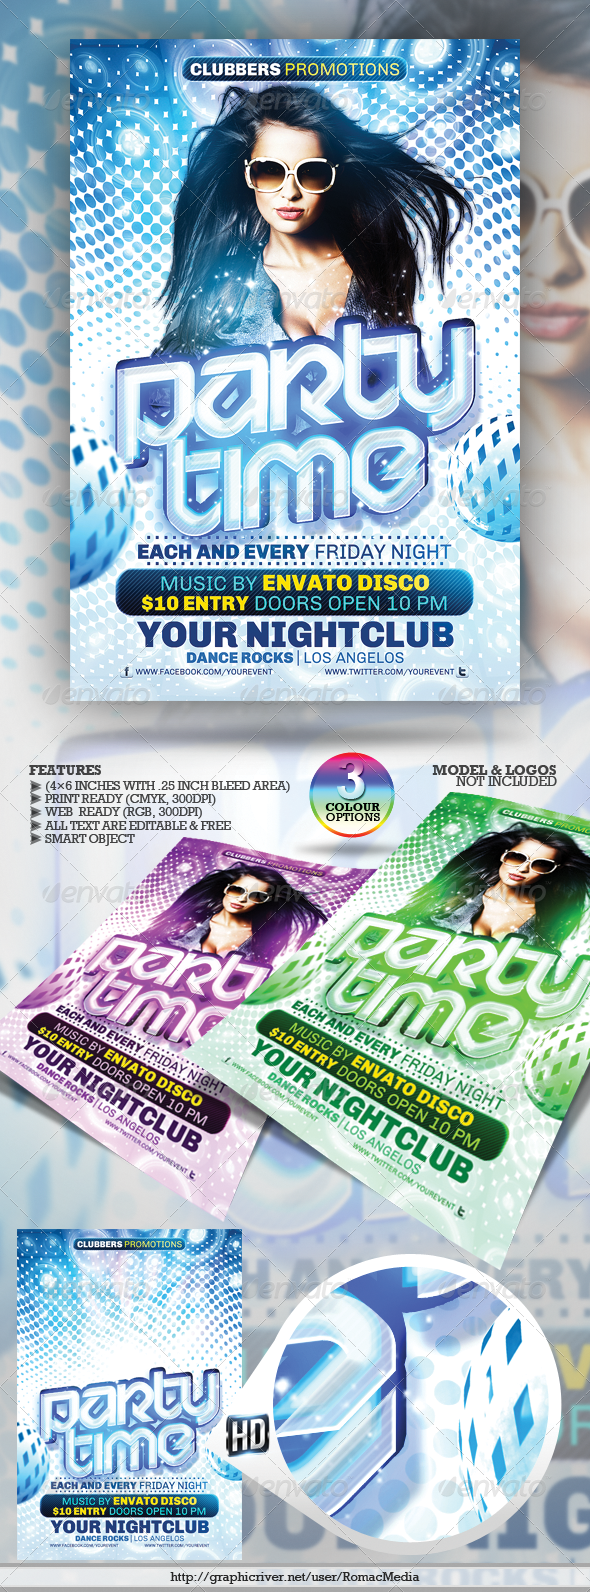 Club Sessions l Party Time Flyer - Clubs & Parties Events